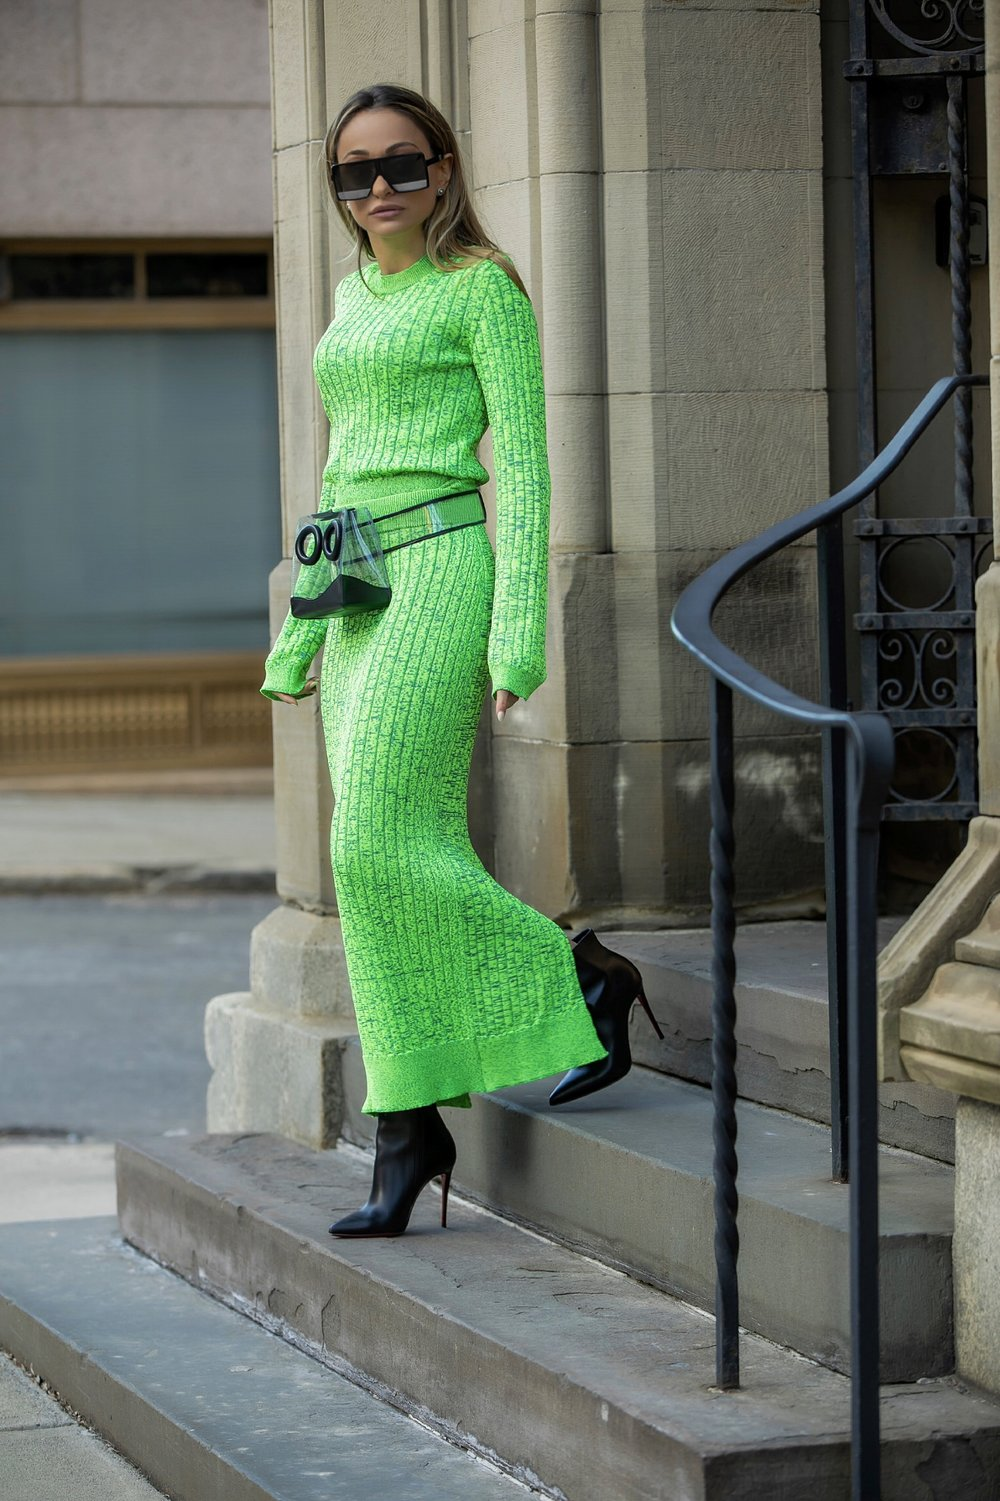 neon green trending for spring. Worn by Lauren Recchia with a Boyy boutique belt bag and Christian Louboutin booties